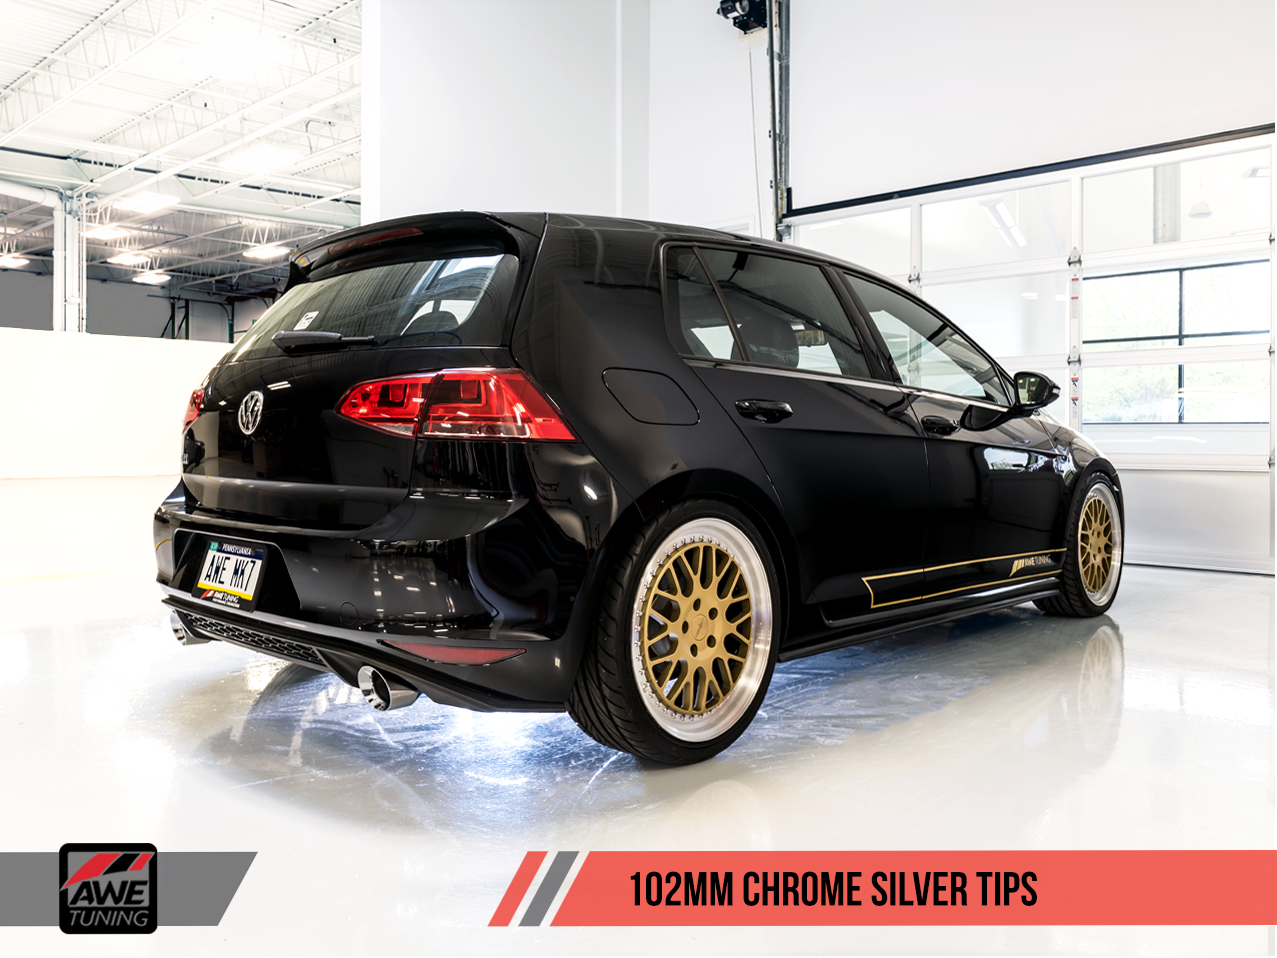 Axle Back Exhaust >> AWE Tuning: MK7 GTI Touring Edition Exhaust Chrome - Deep South Tuning